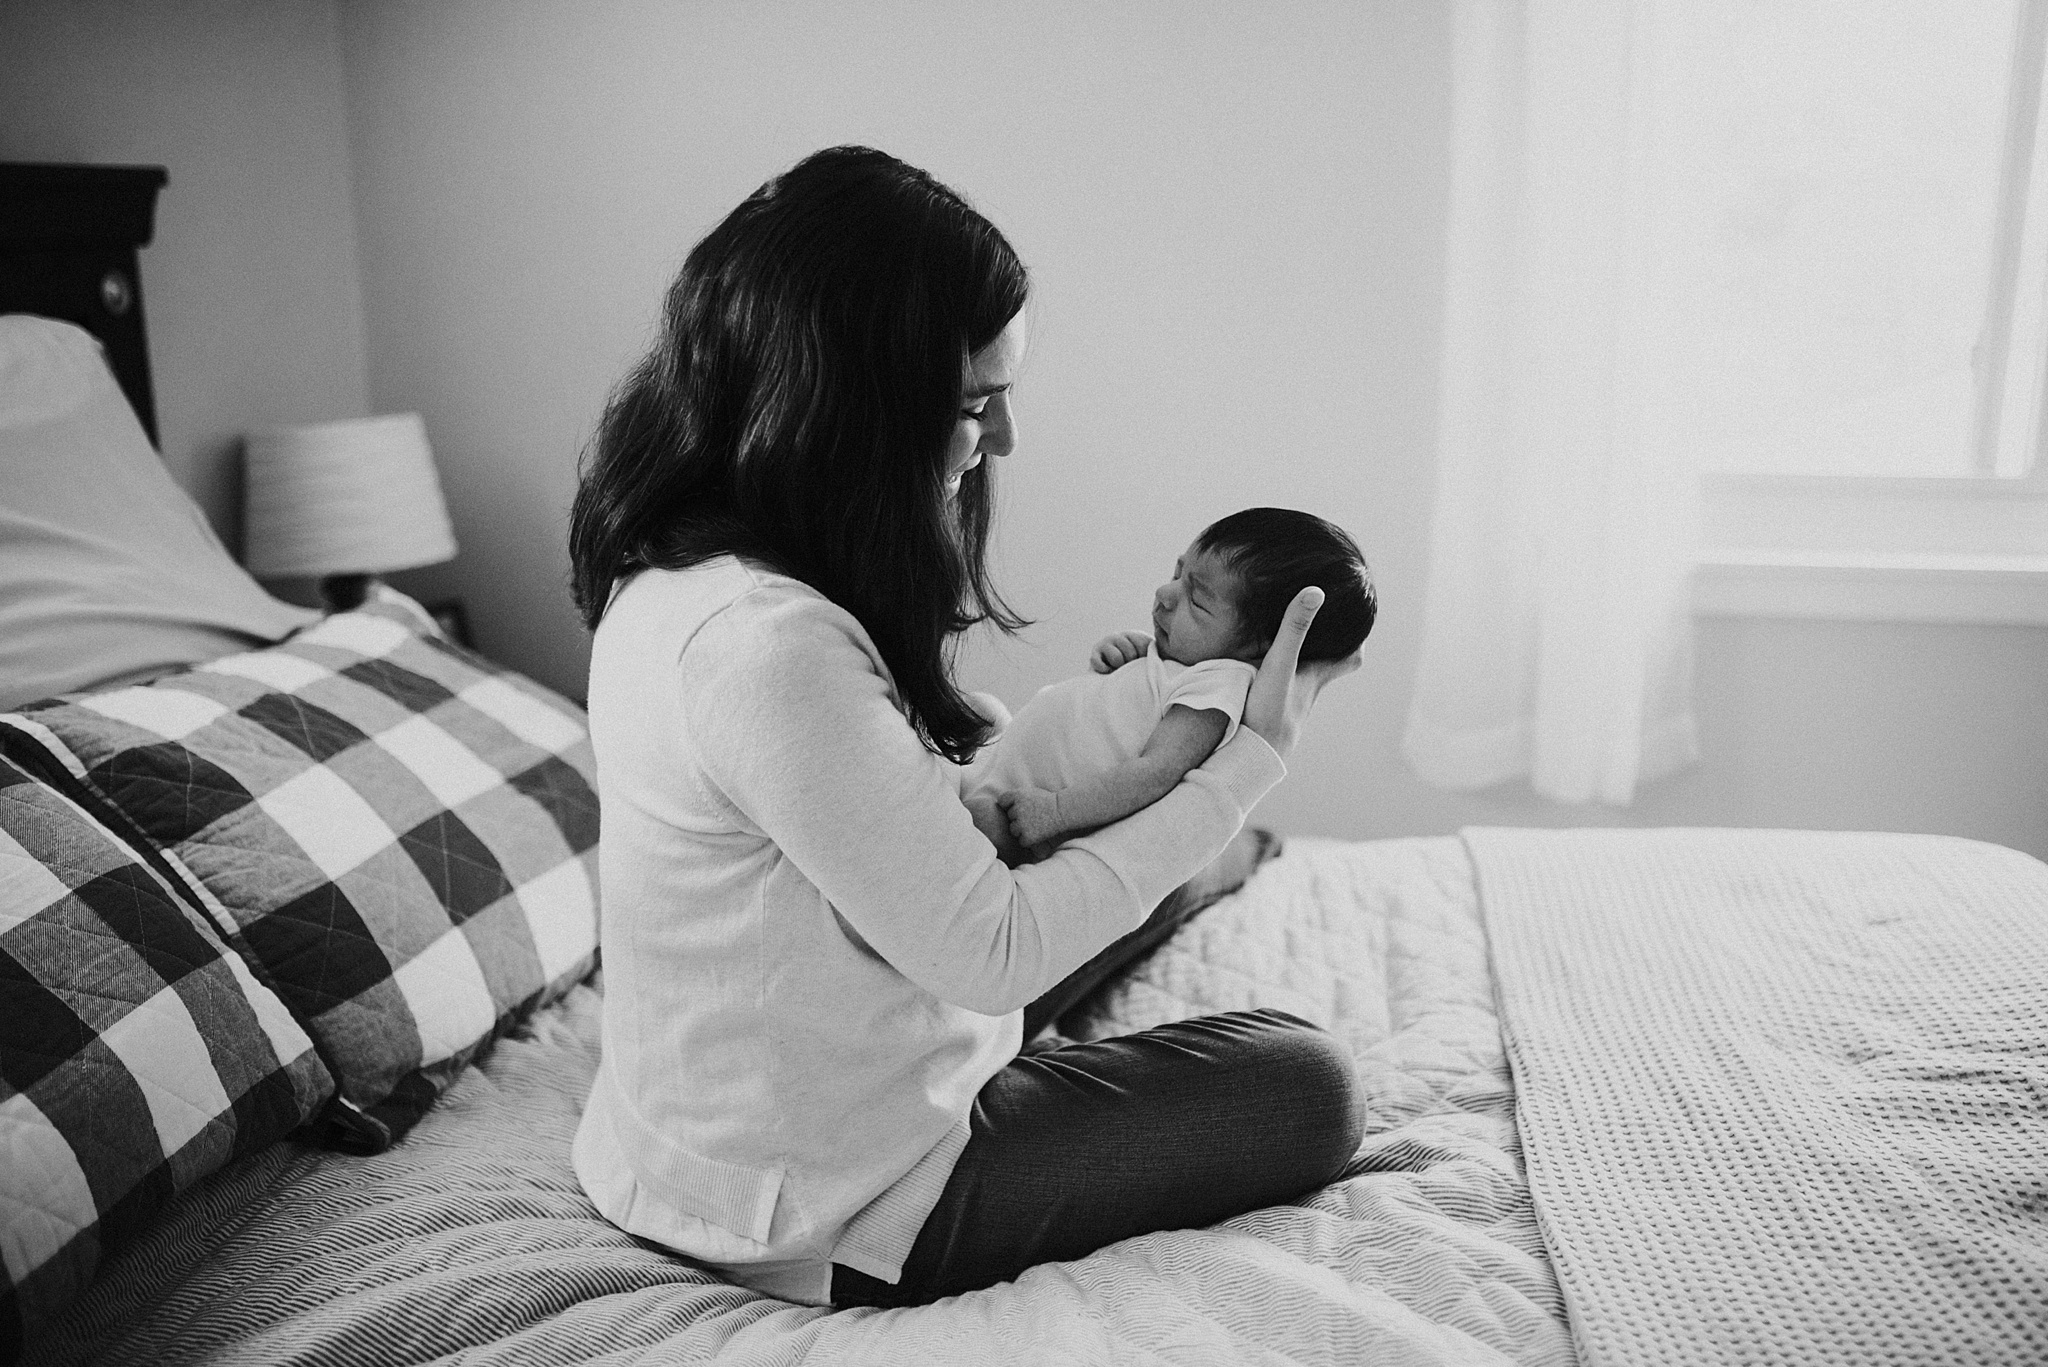 Natural-In-Home-Lifestyle-Newborn-Family-Photographer-Pittsburgh-Rachel-Rossetti-Photography_0024.jpg